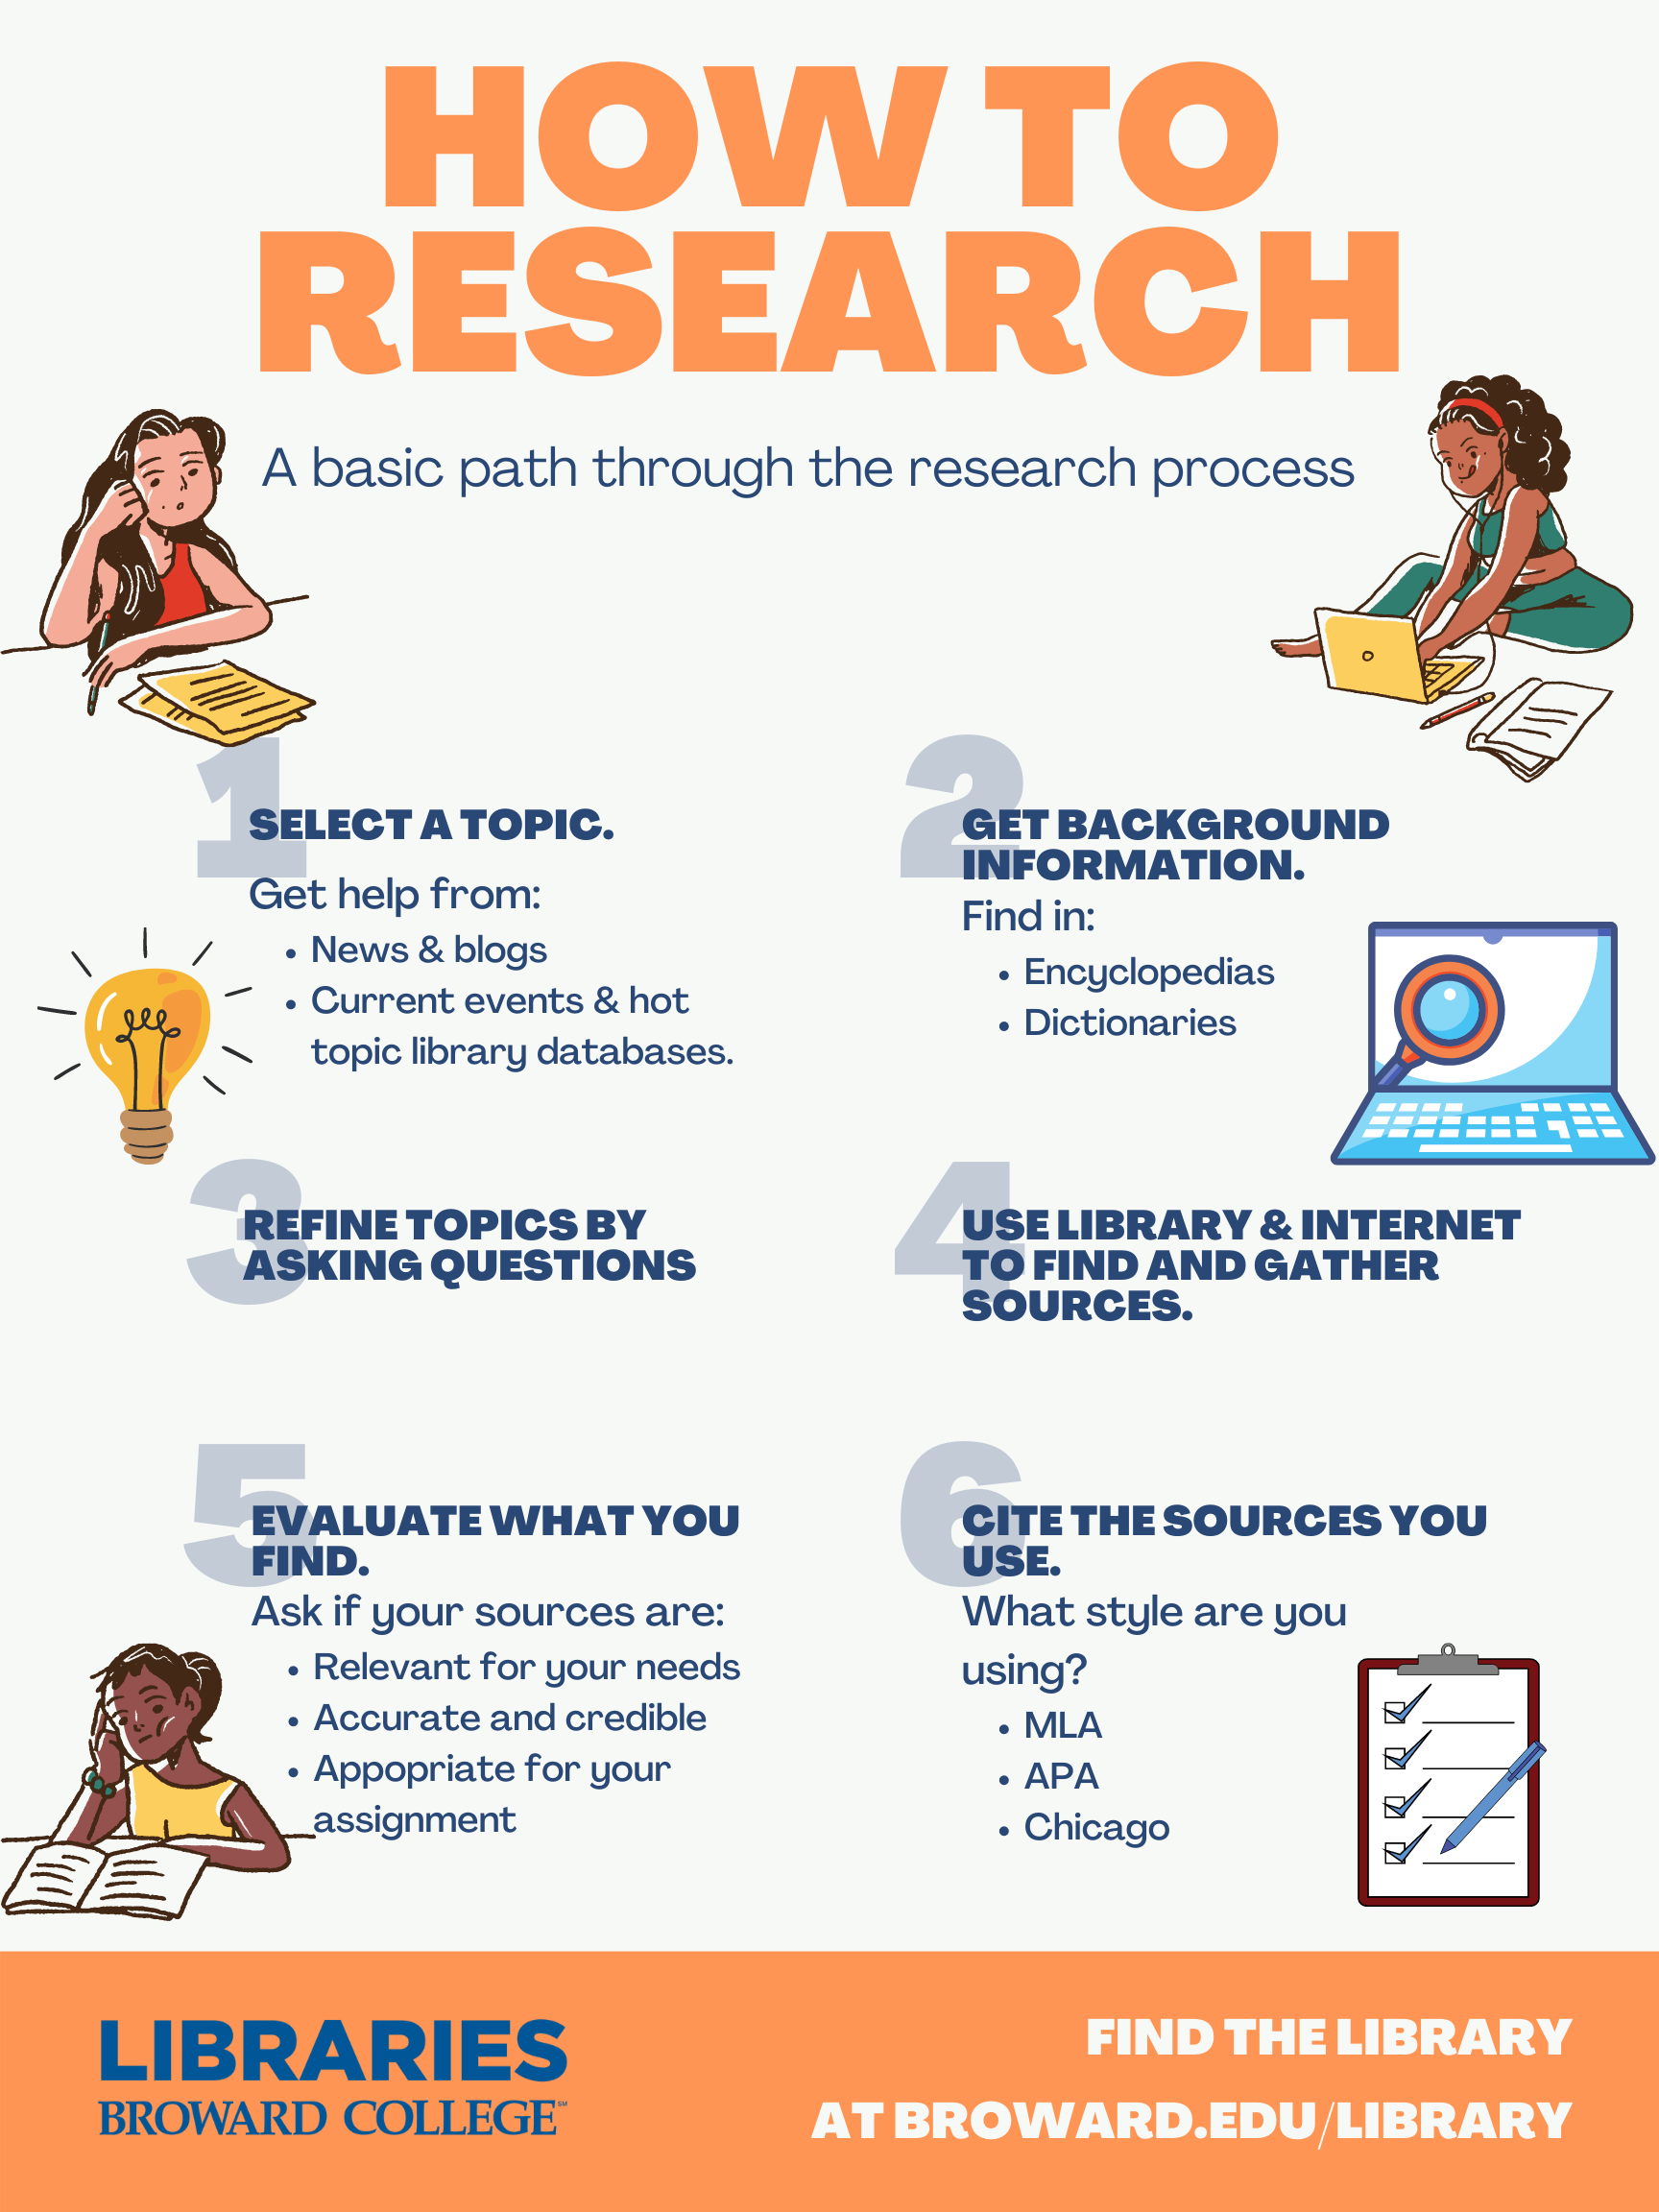 How to research steps with icons and images of students studying and on computers